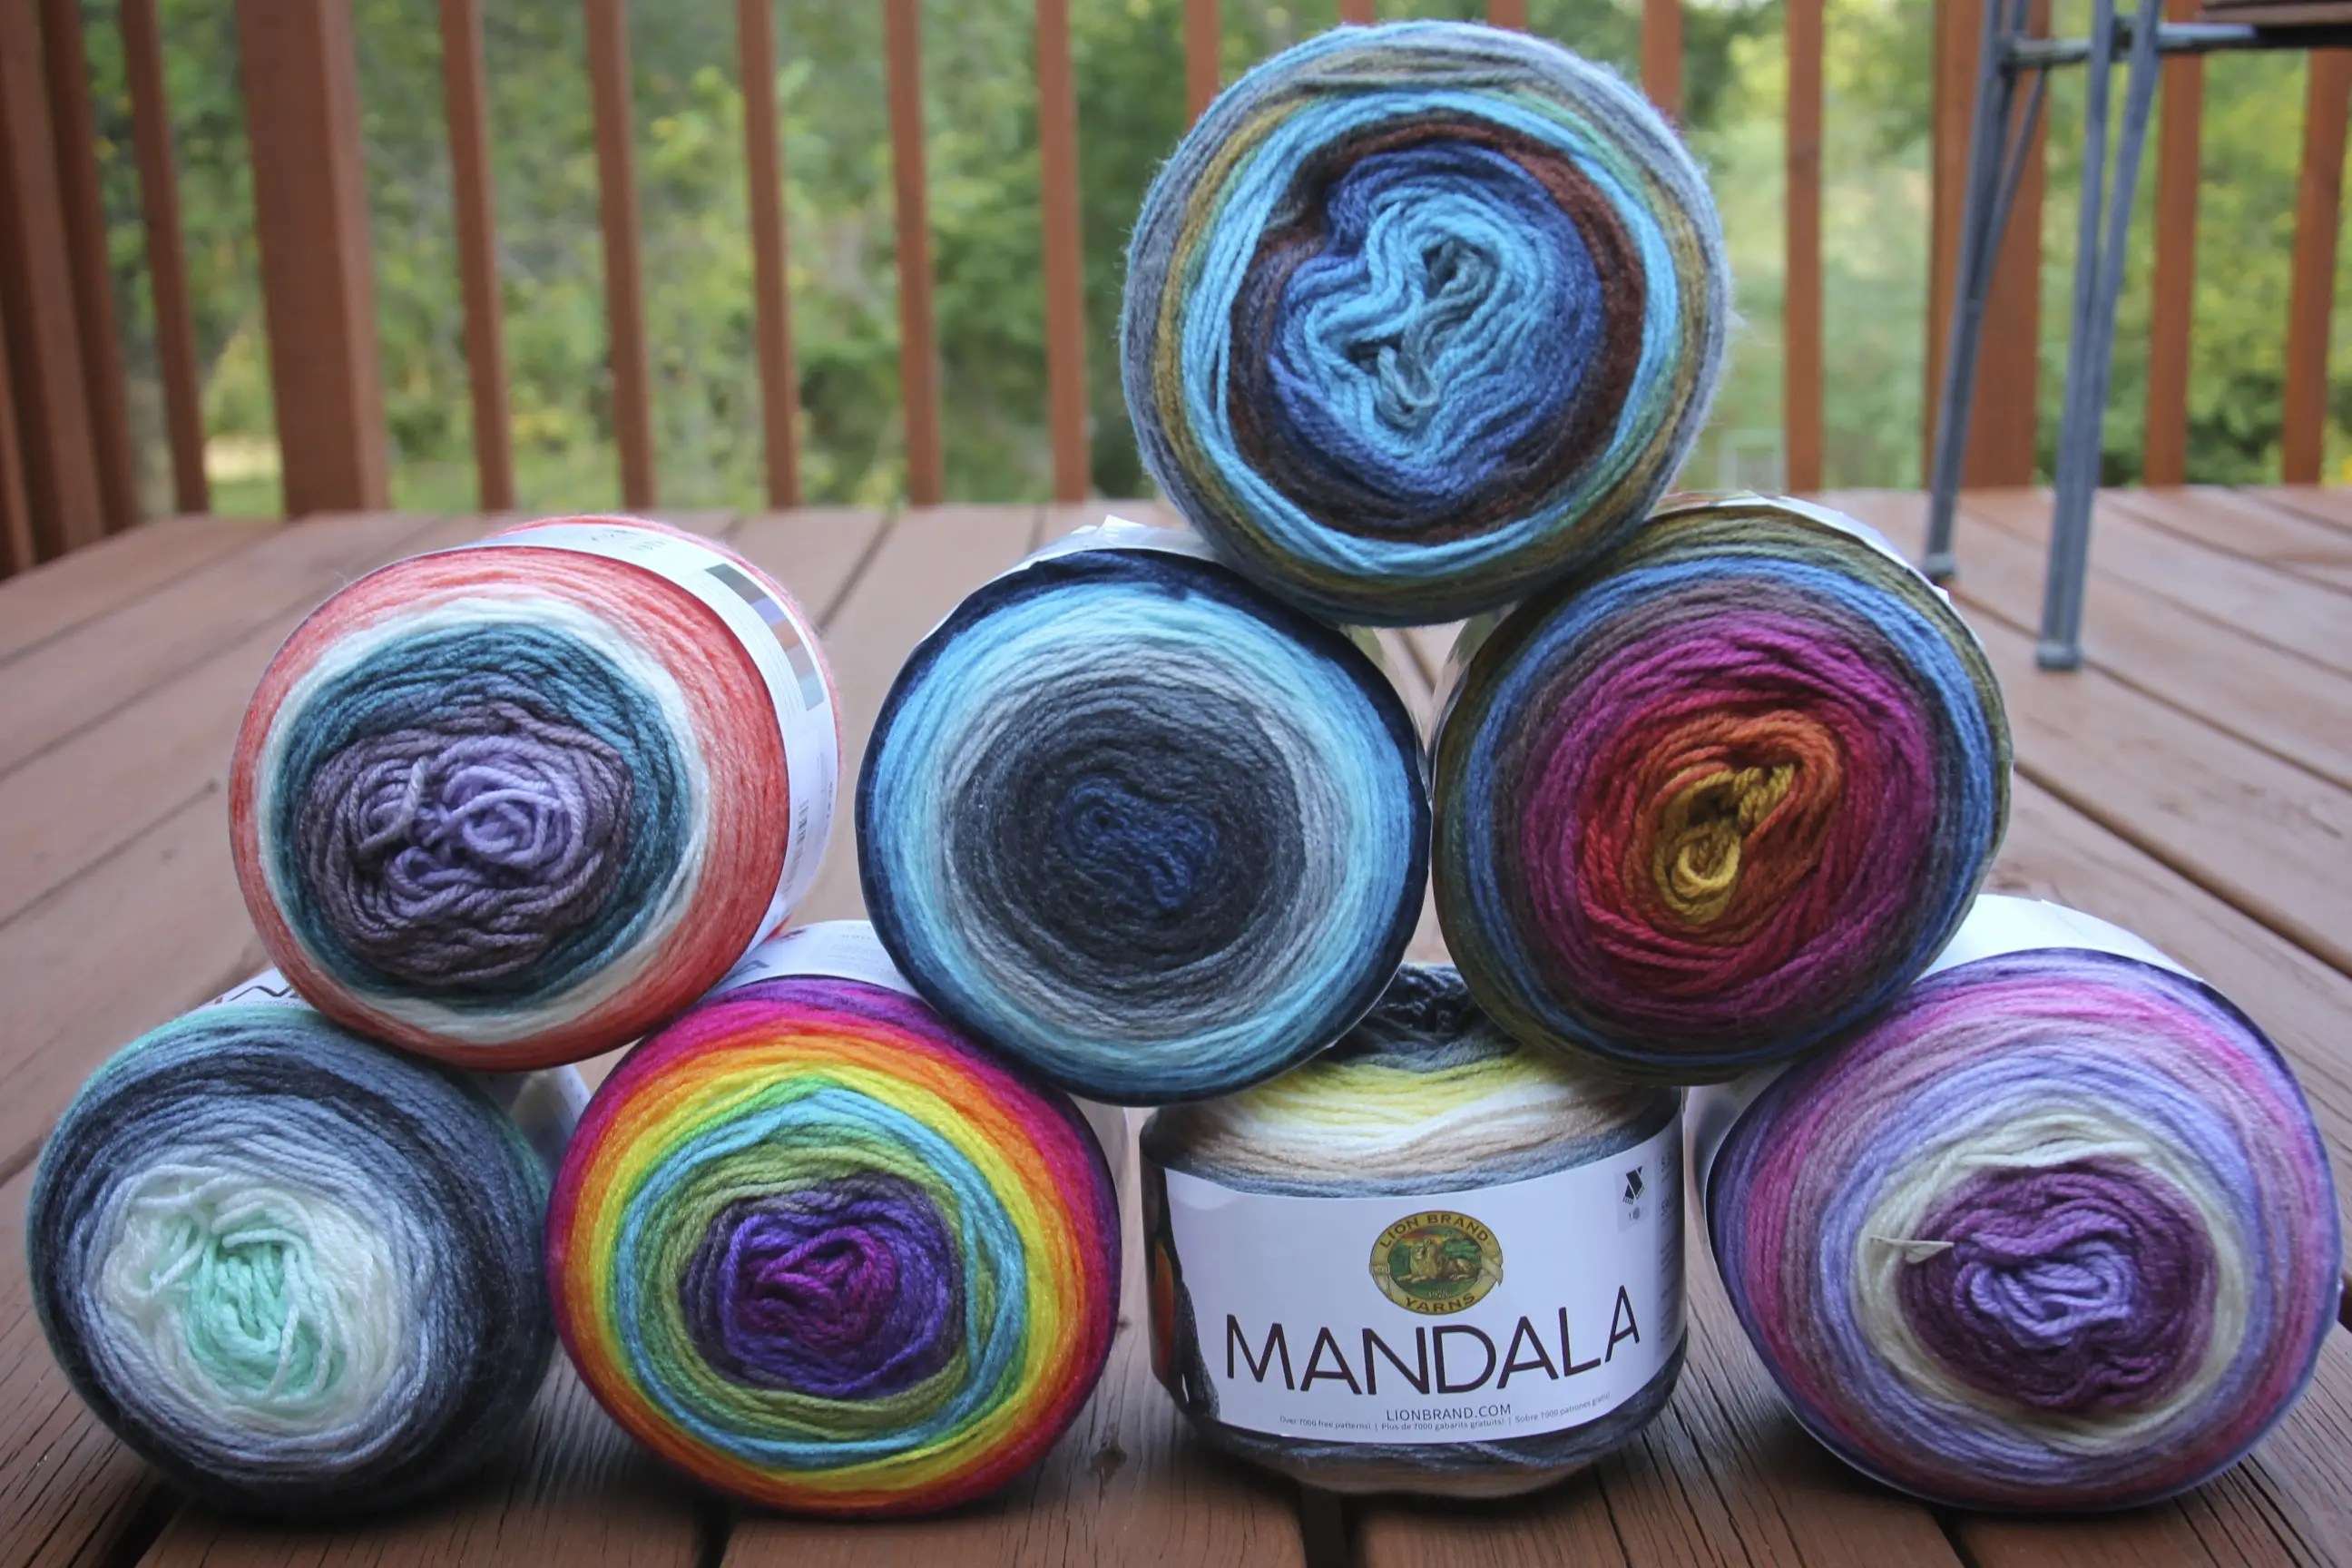 Lion Brand Mandala Yarn Review A 100 Honest And Unbiased Review